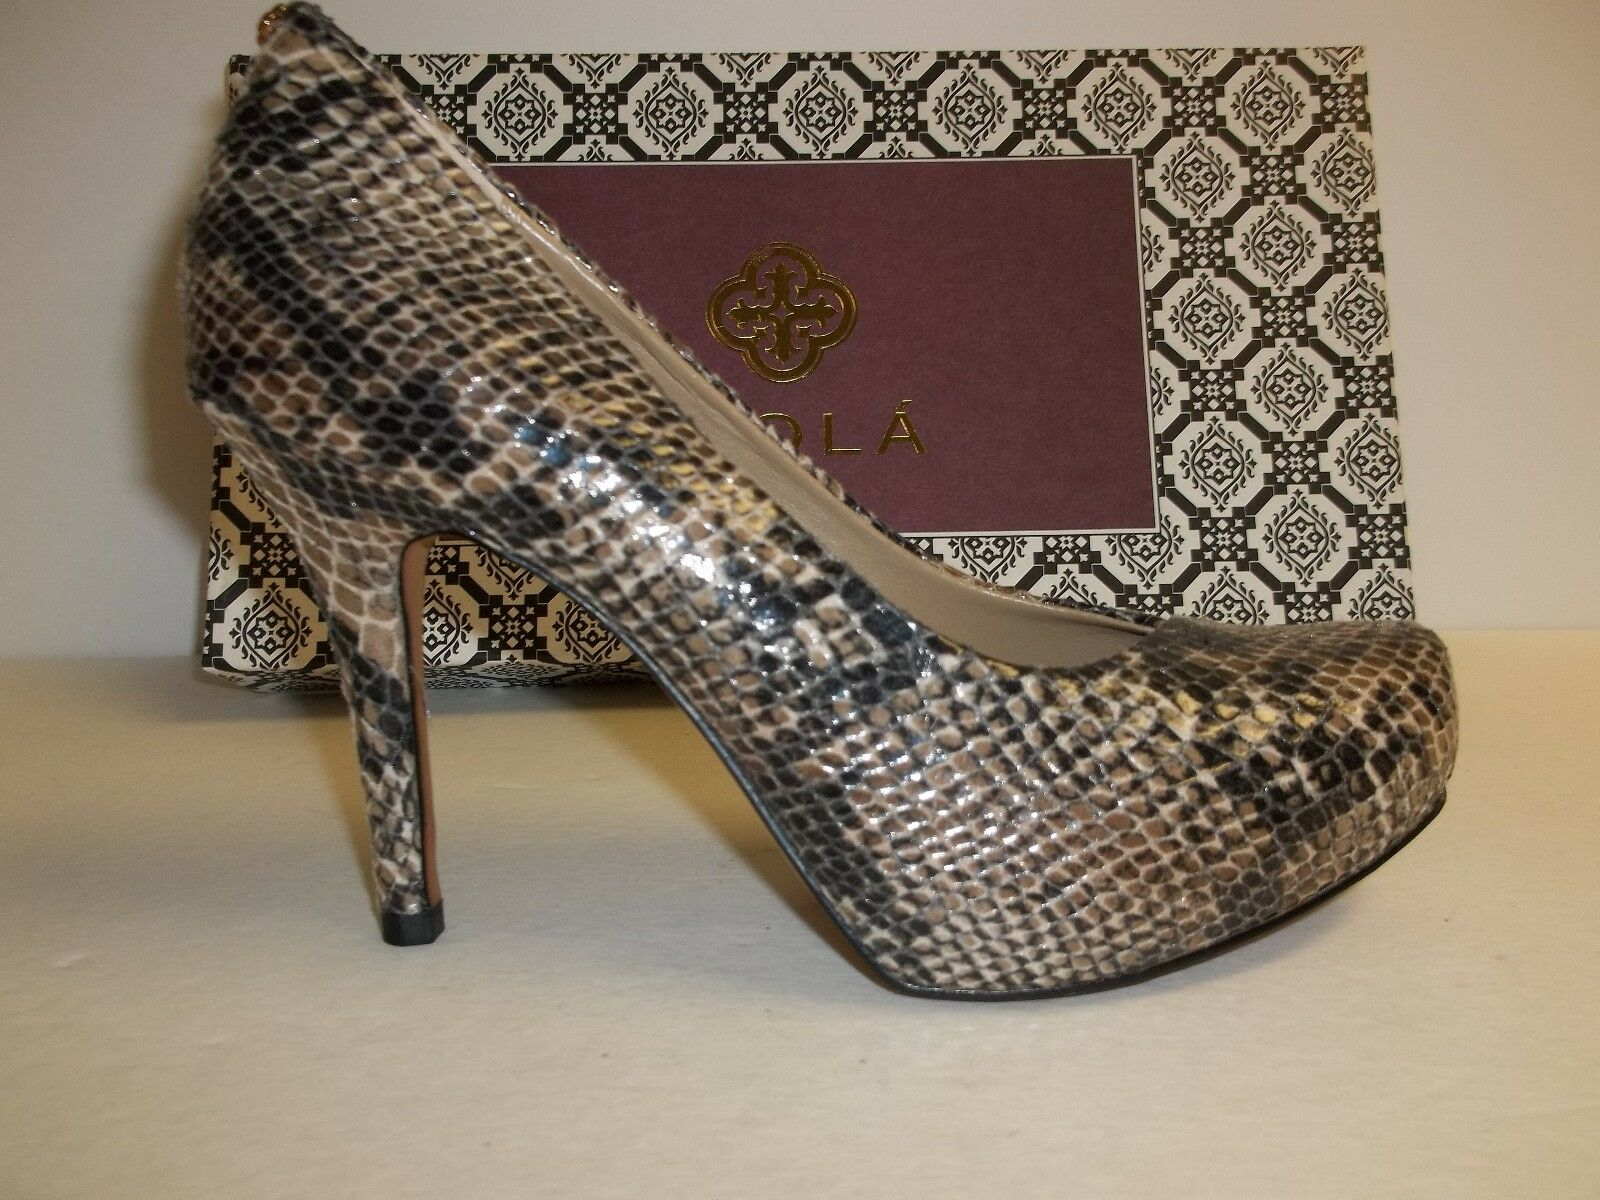 Isola Größe 7 M CAGNEY Snake Print Sand Leather Platform Pumps New damen schuhe